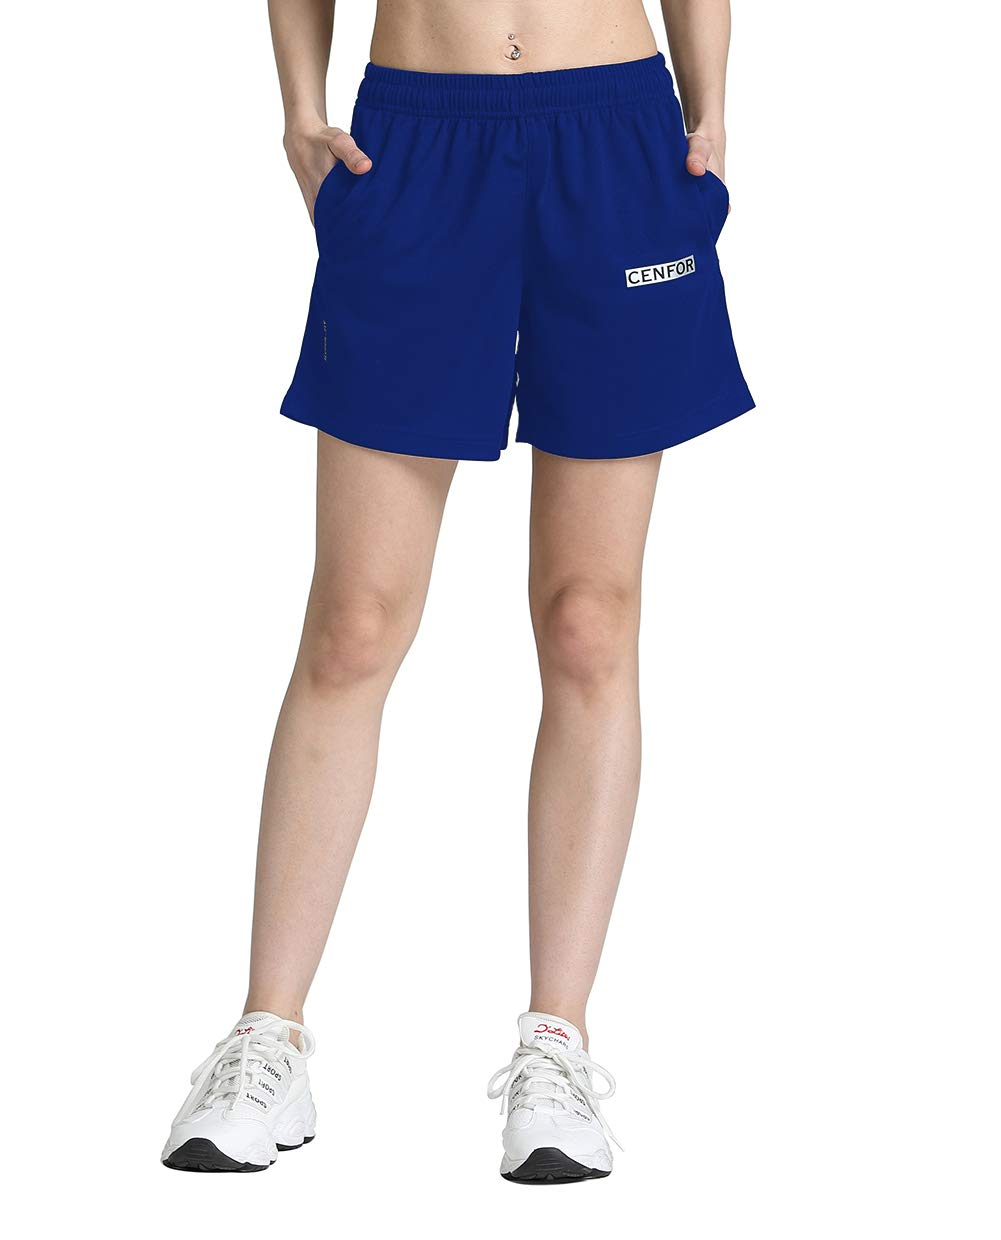 CENFOR Women's 5'' Quick Dry Workout Running Shorts with Pockets for Gym, Training, Jogging and Leisure (Blue, XL) by CENFOR